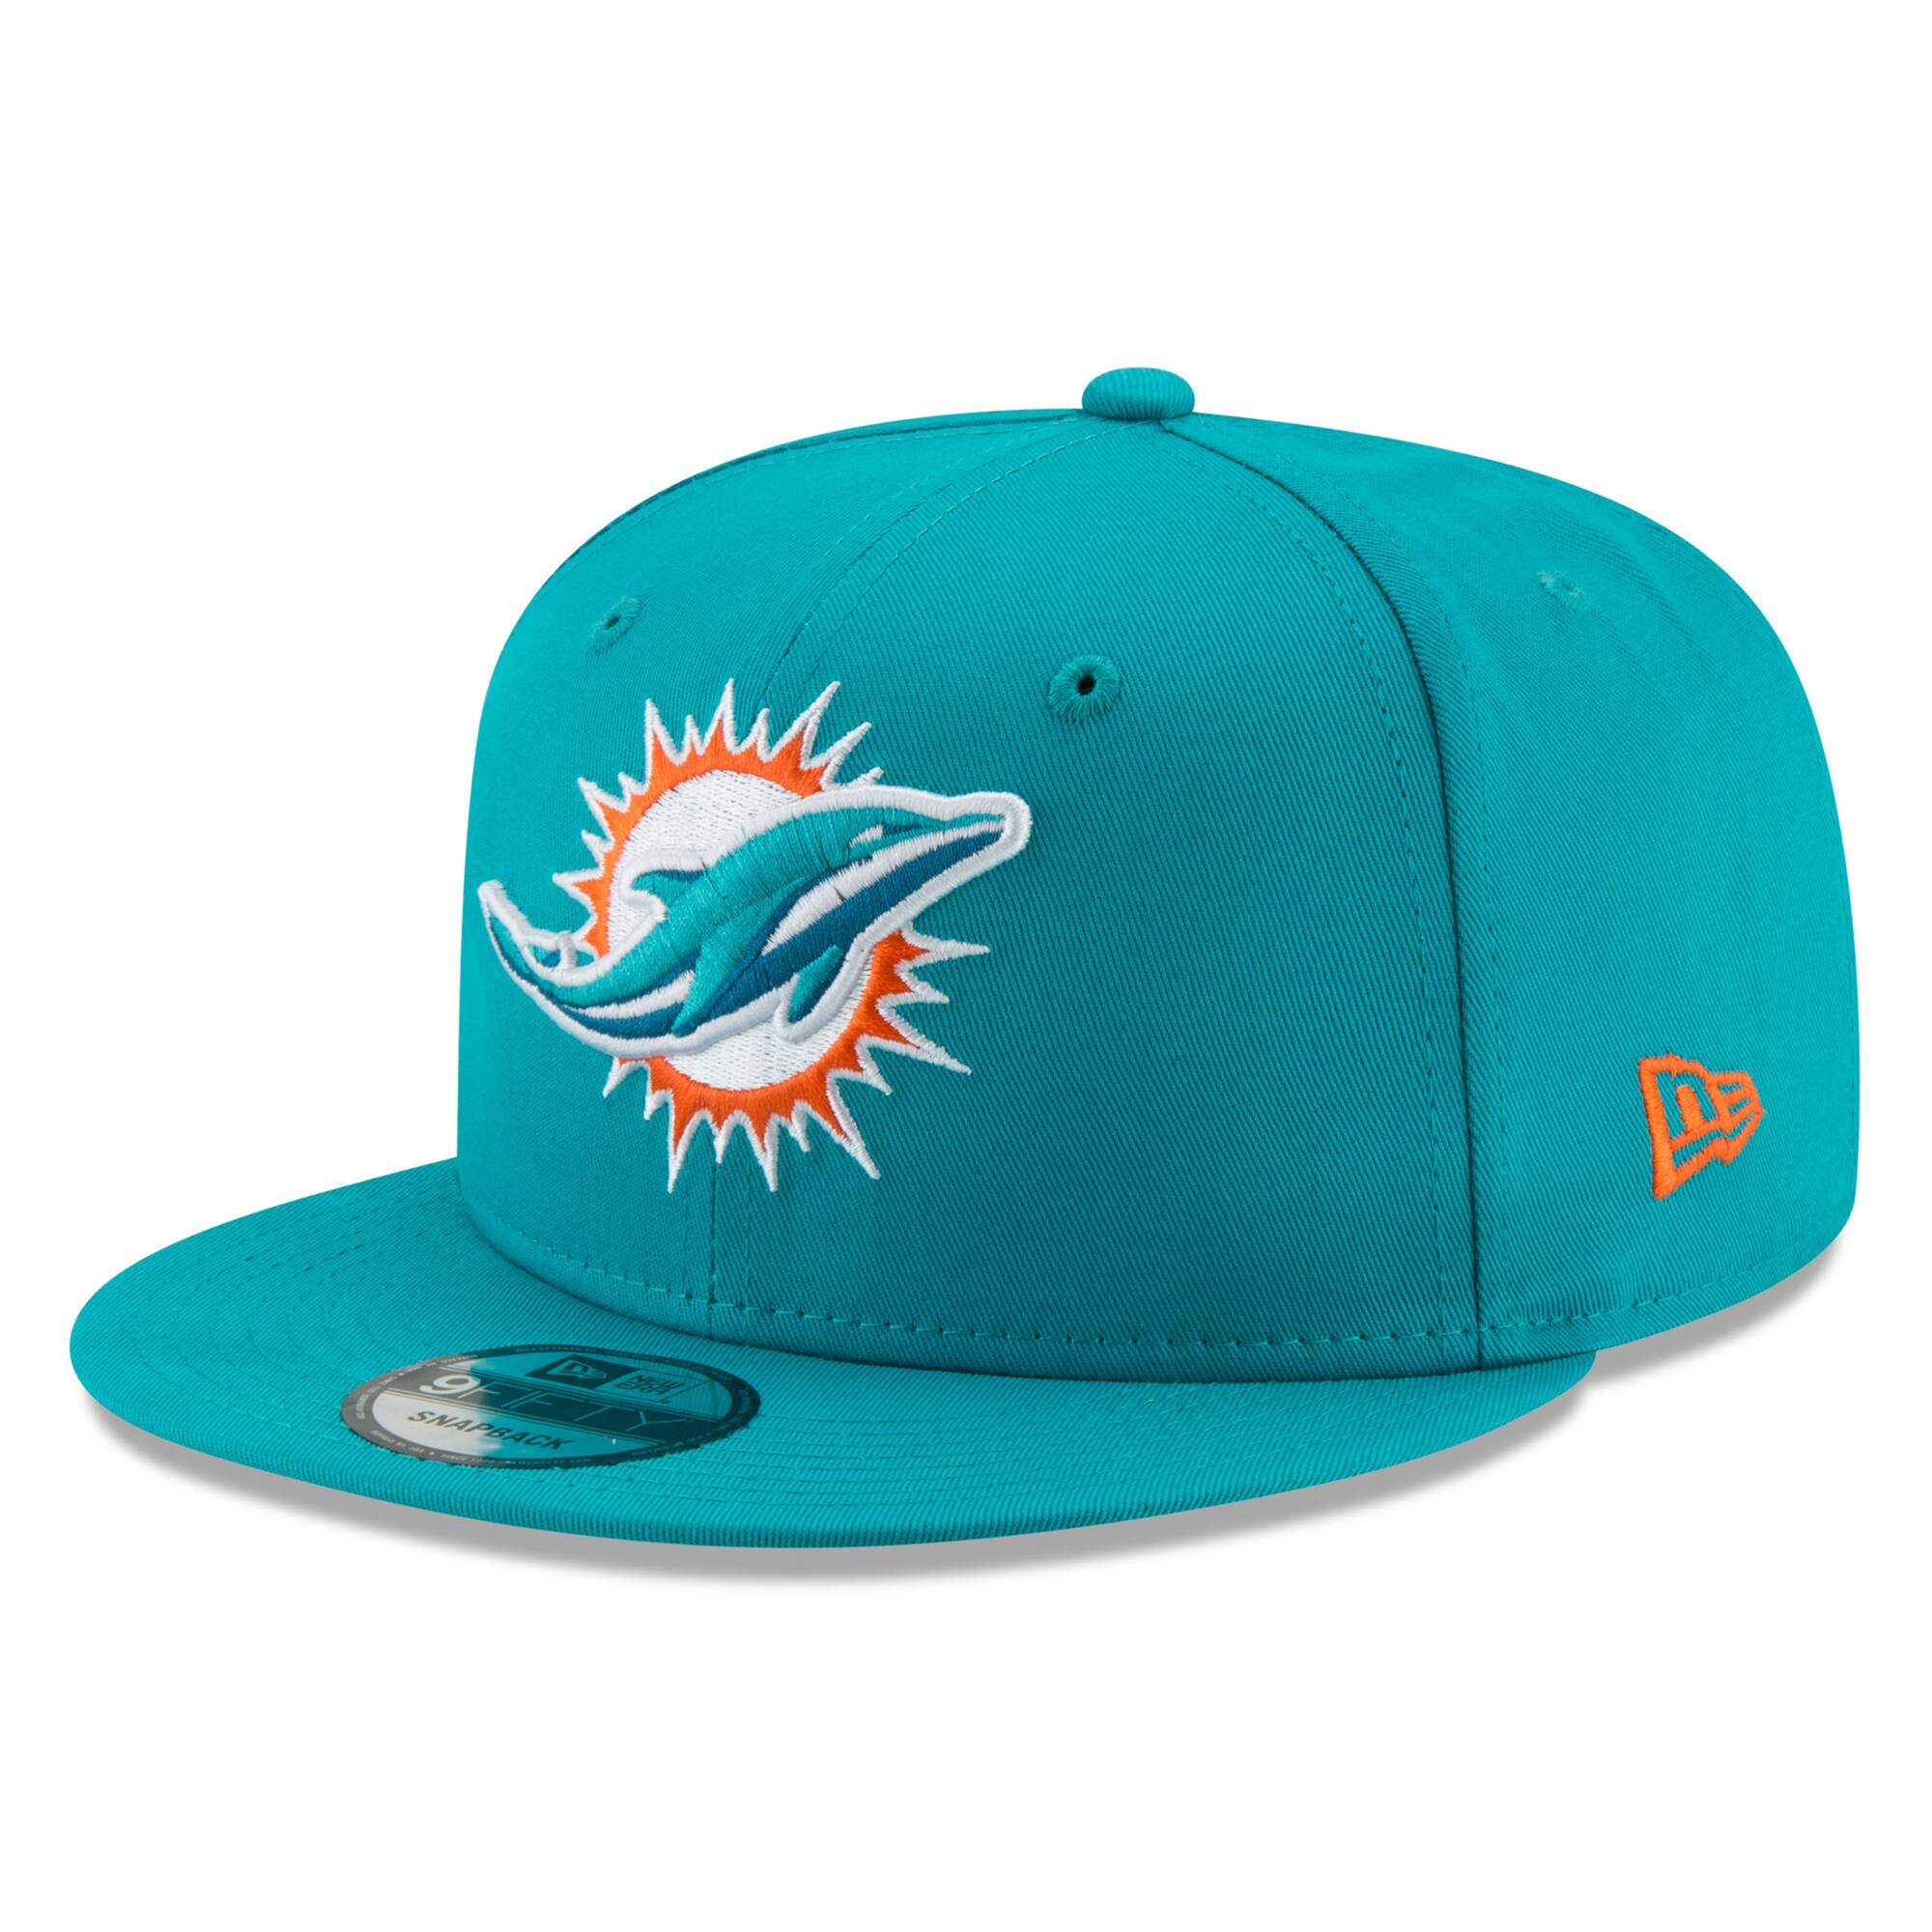 Miami Dolphins New Era Basic 9FIFTY Adjustable Snapback Hat - Aqua